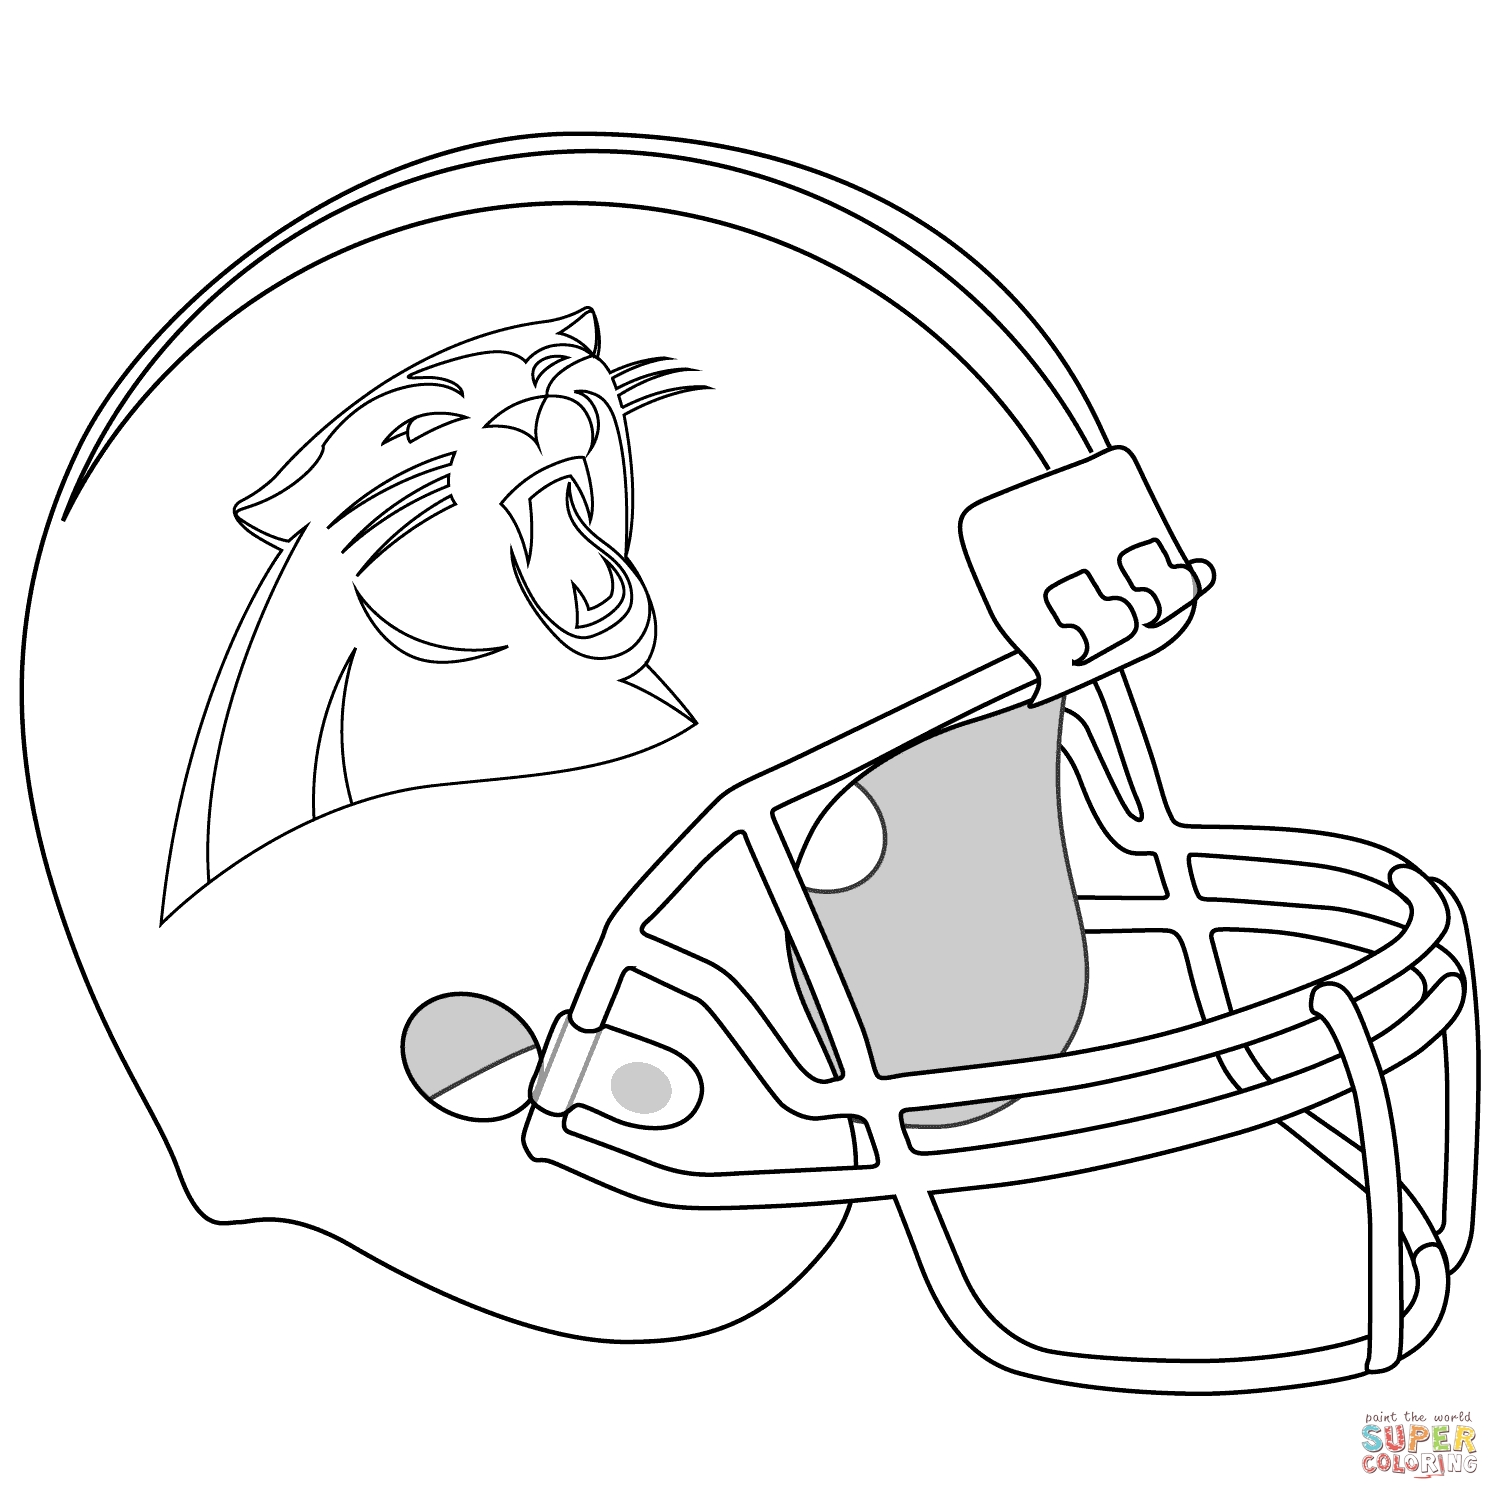 1500x1500 Drawings Of Panthers Printable Coloring Pages For Kids